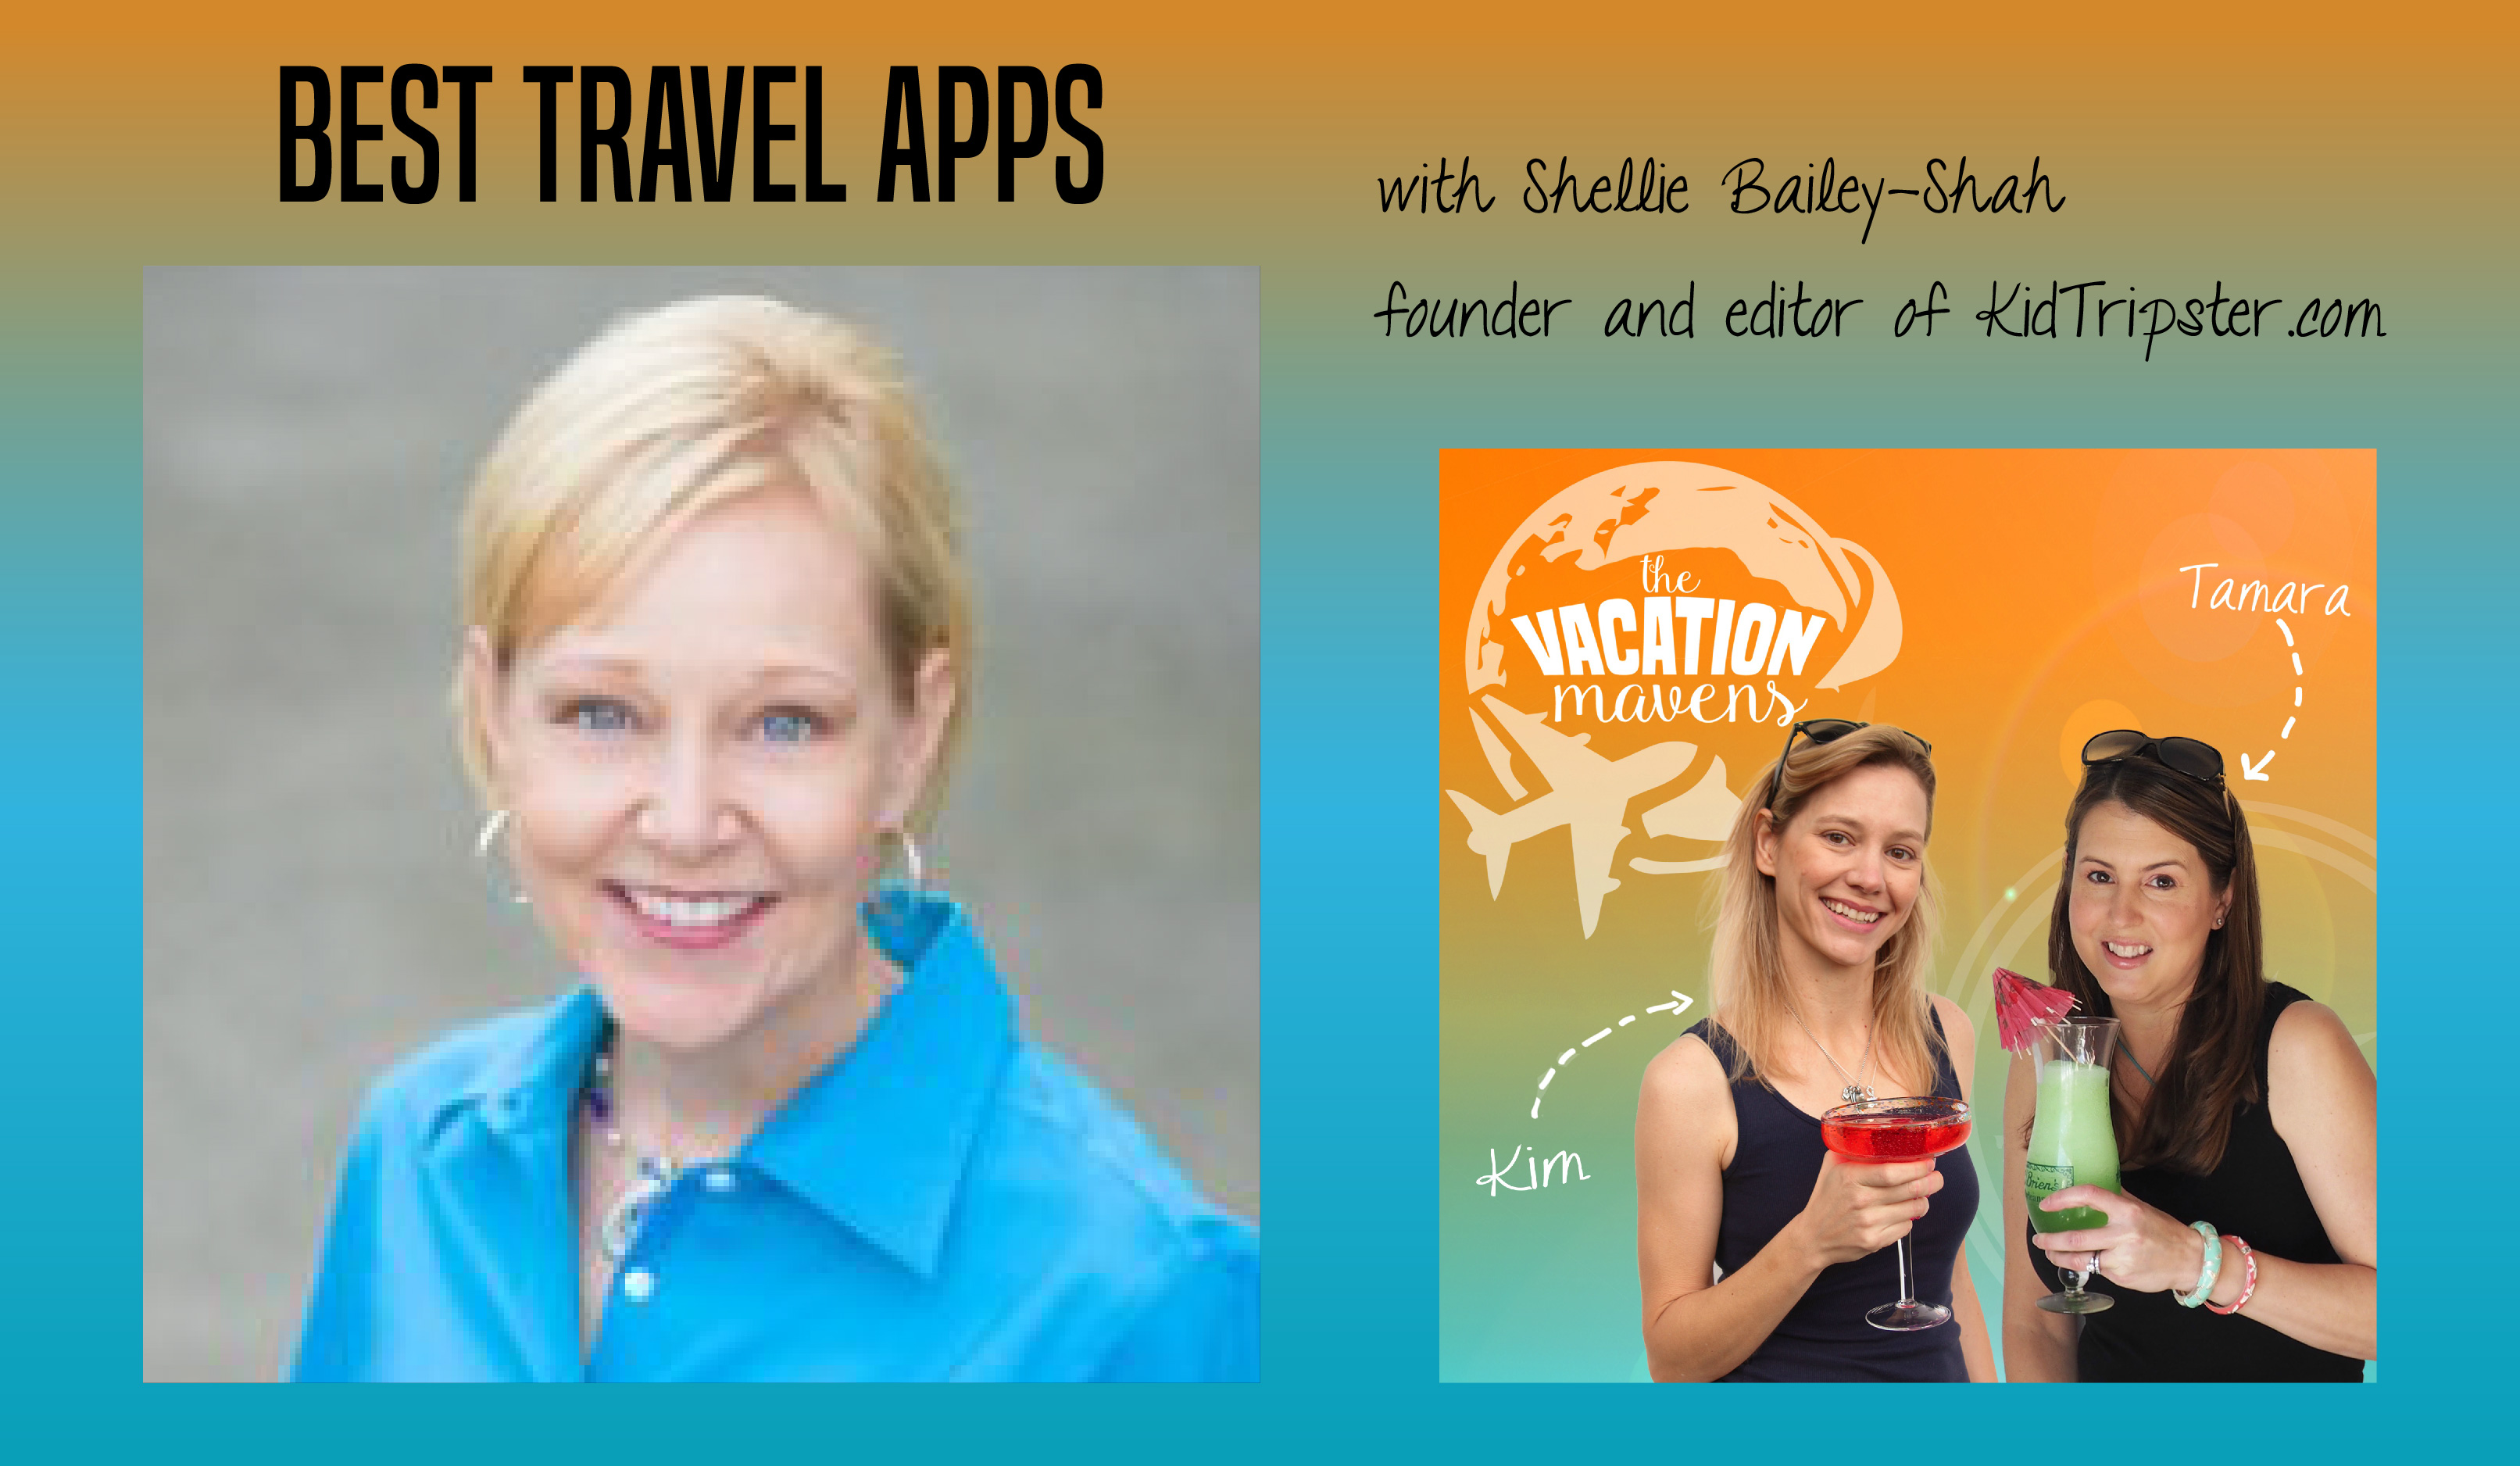 Best travel apps with Shellie from Kidtripster